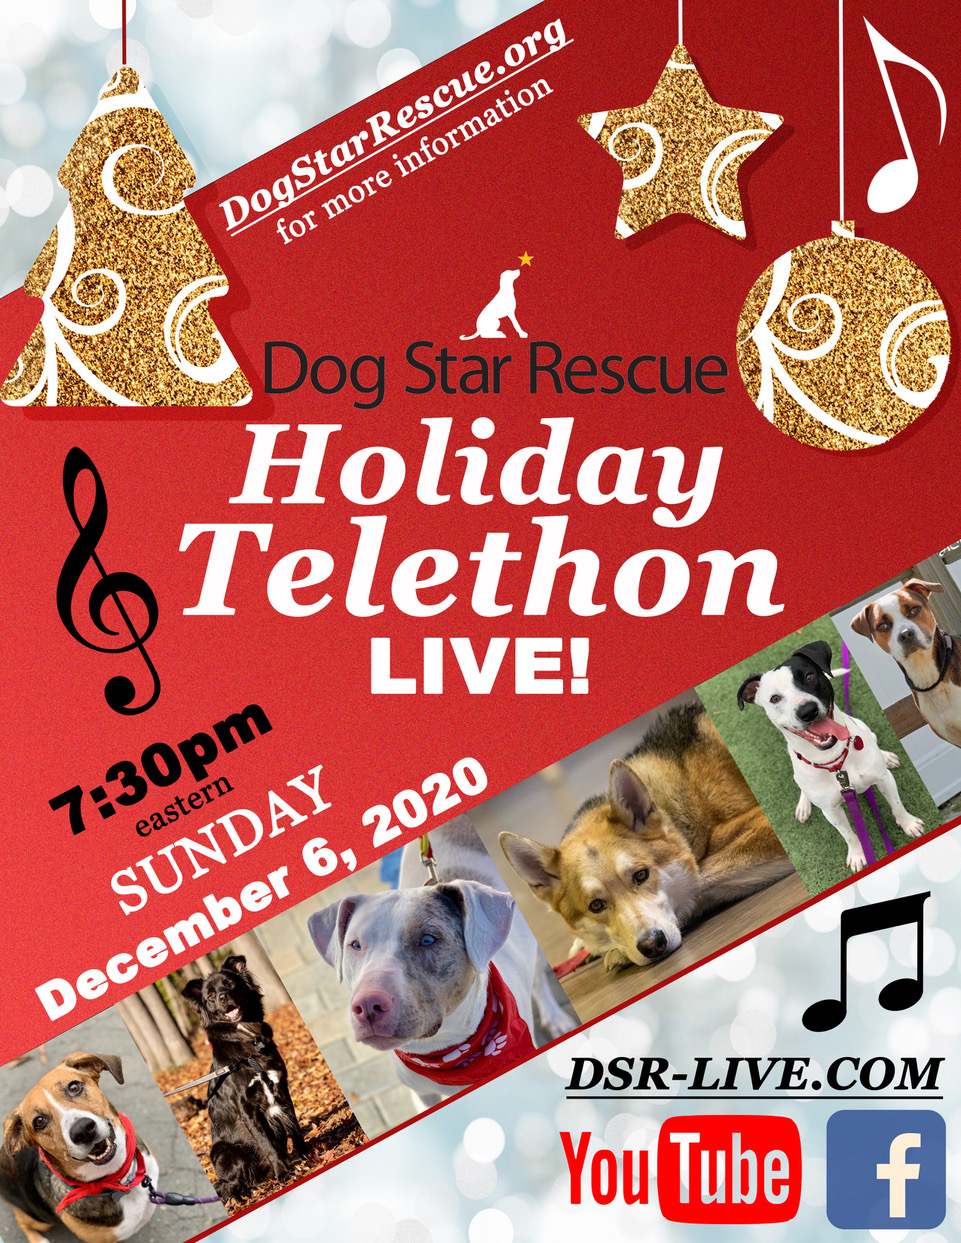 Ferry Law CT Telethon Dogstar